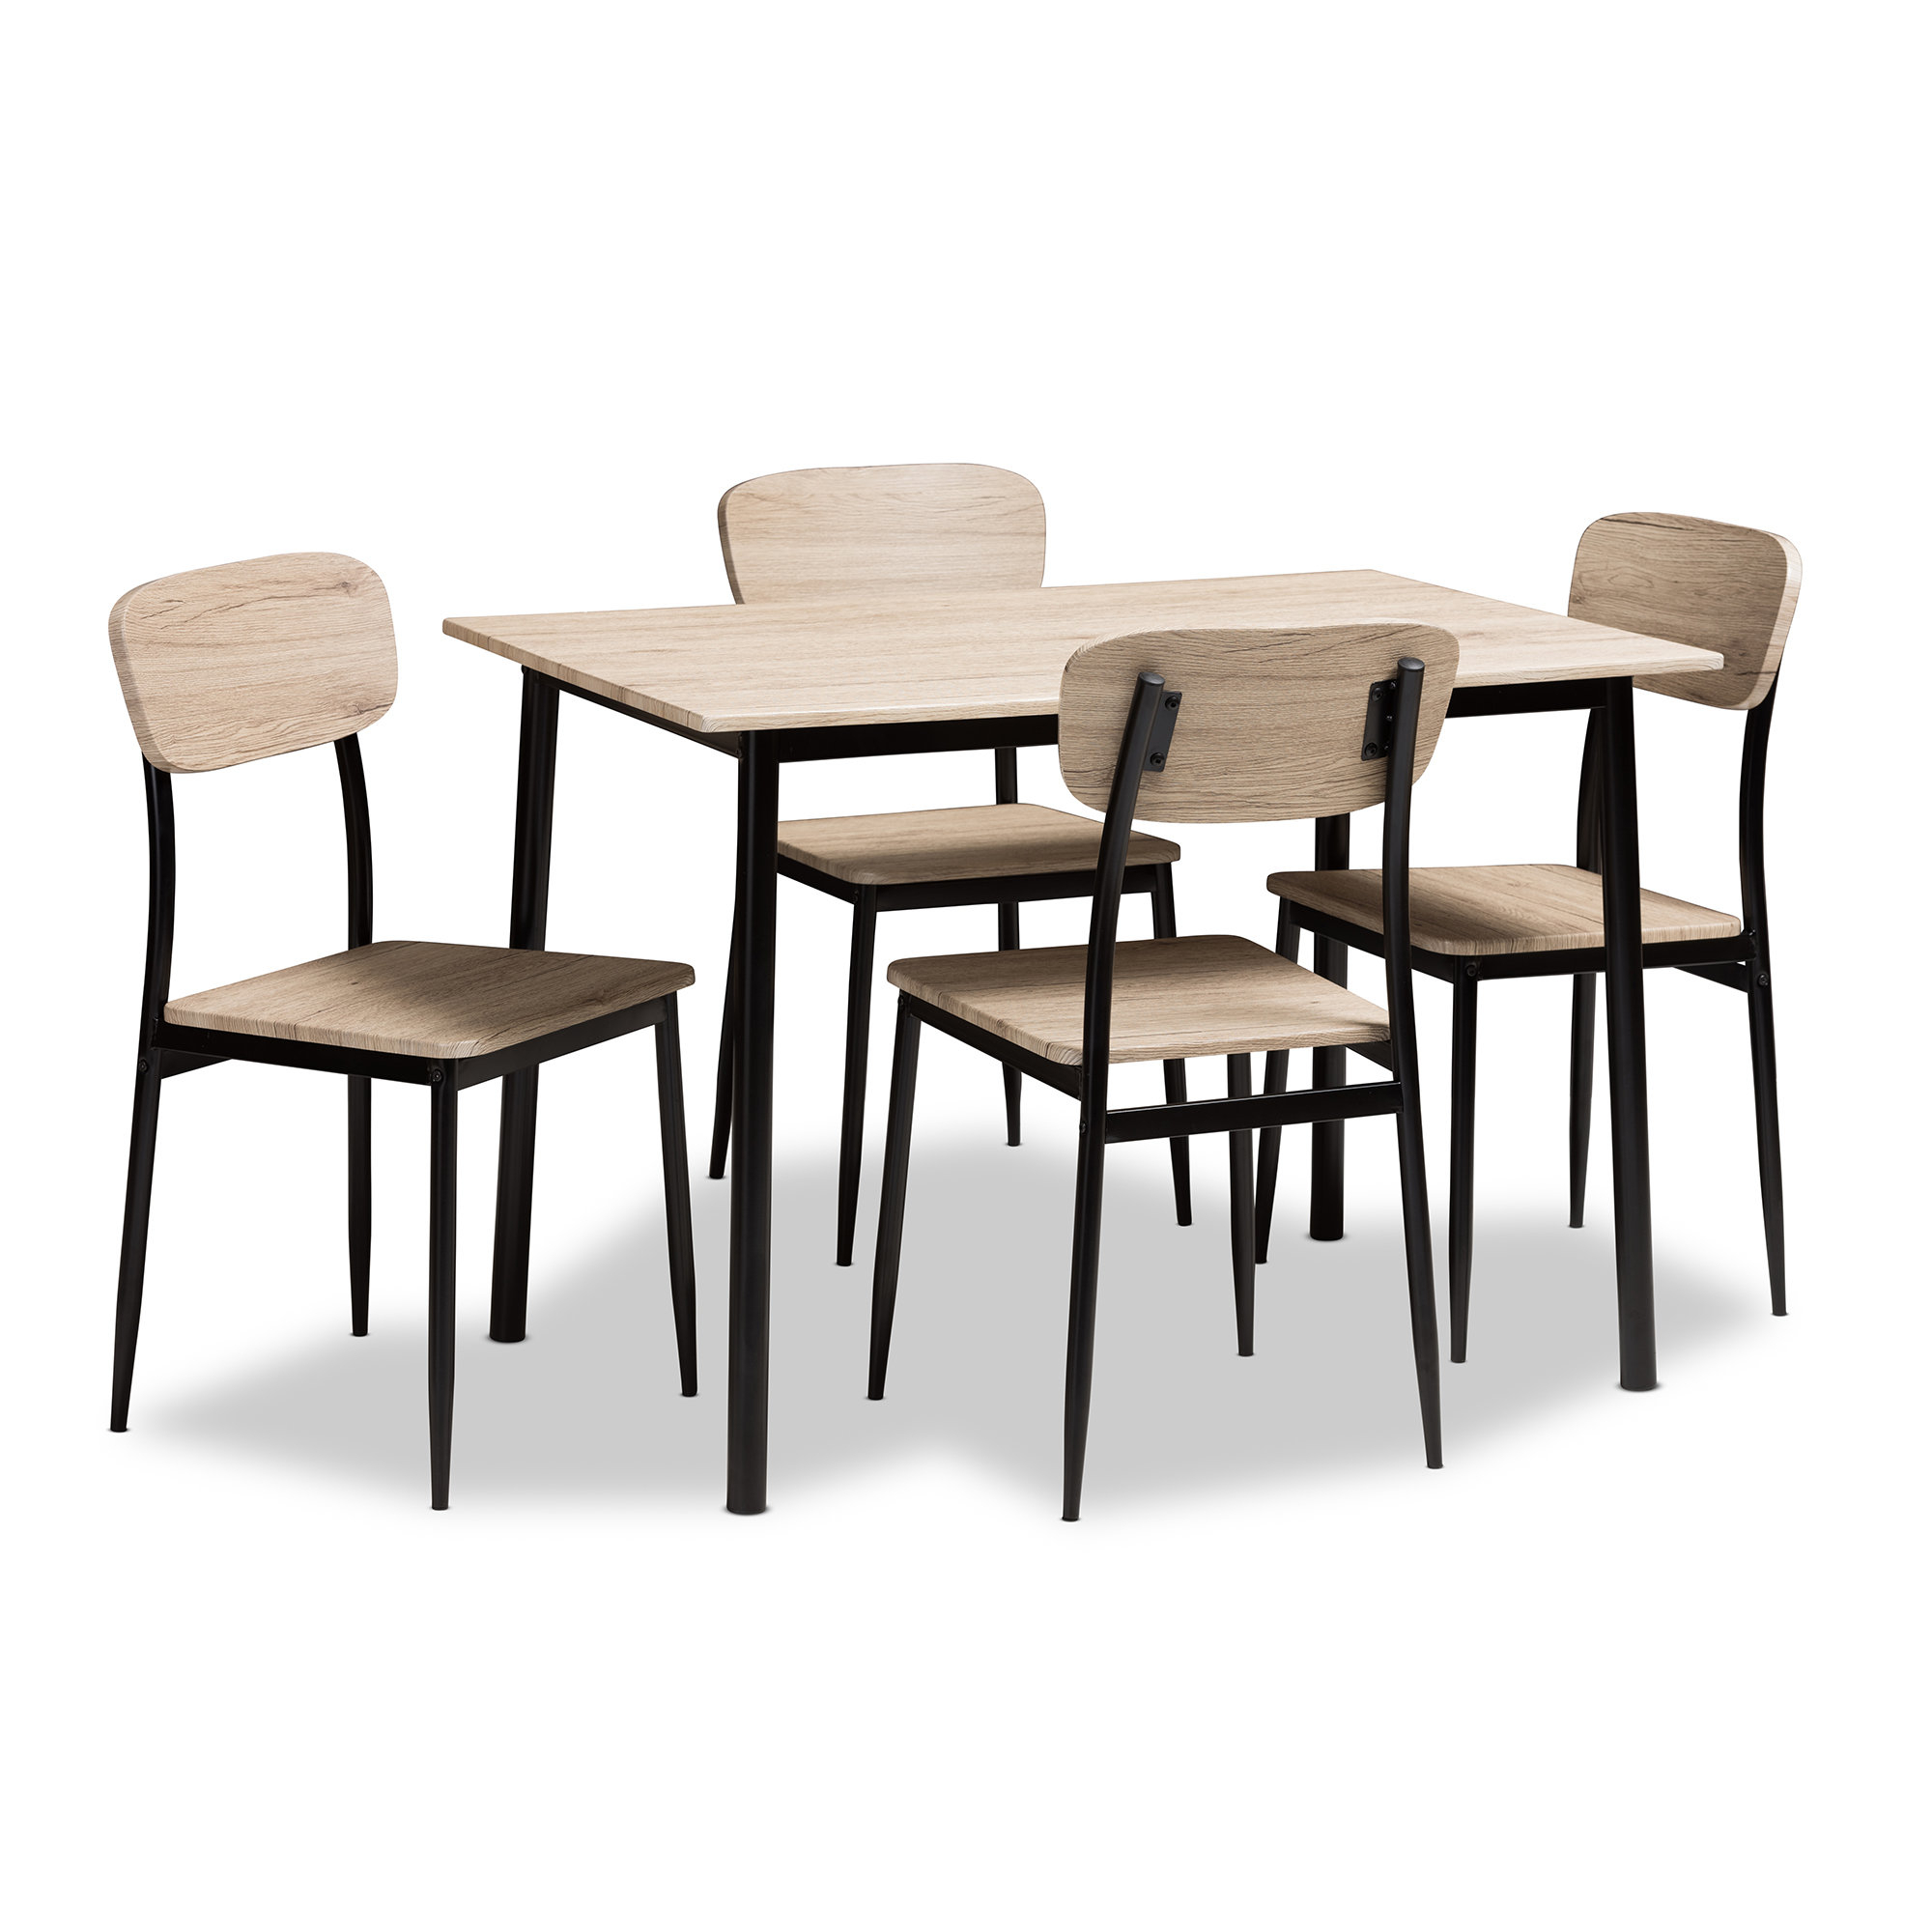 Fashionable Wiggs 5 Piece Dining Set Pertaining To Middleport 5 Piece Dining Sets (View 5 of 20)